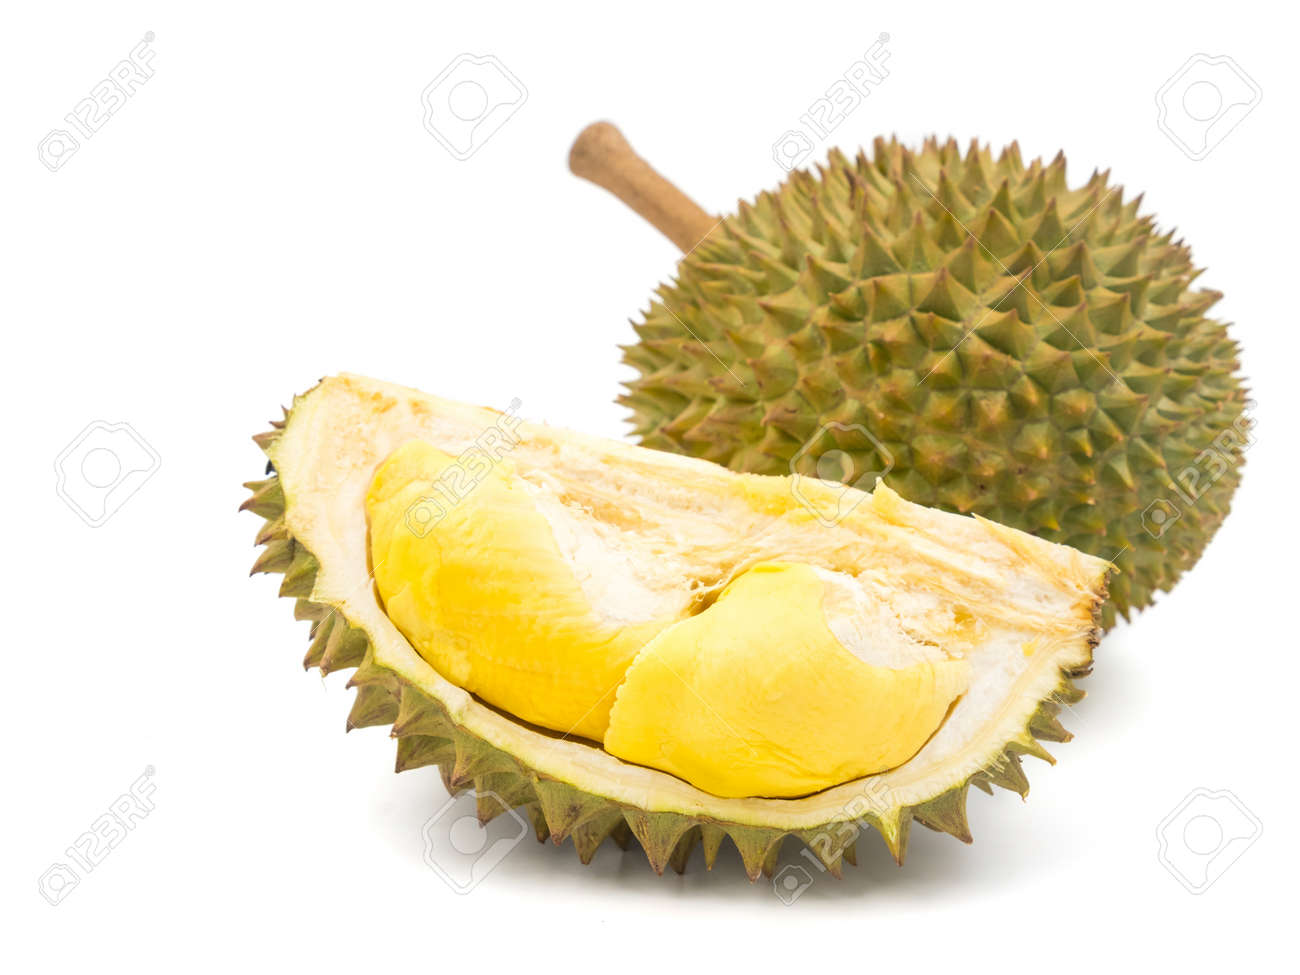 King of fruits, Durian on white background. - 78673348